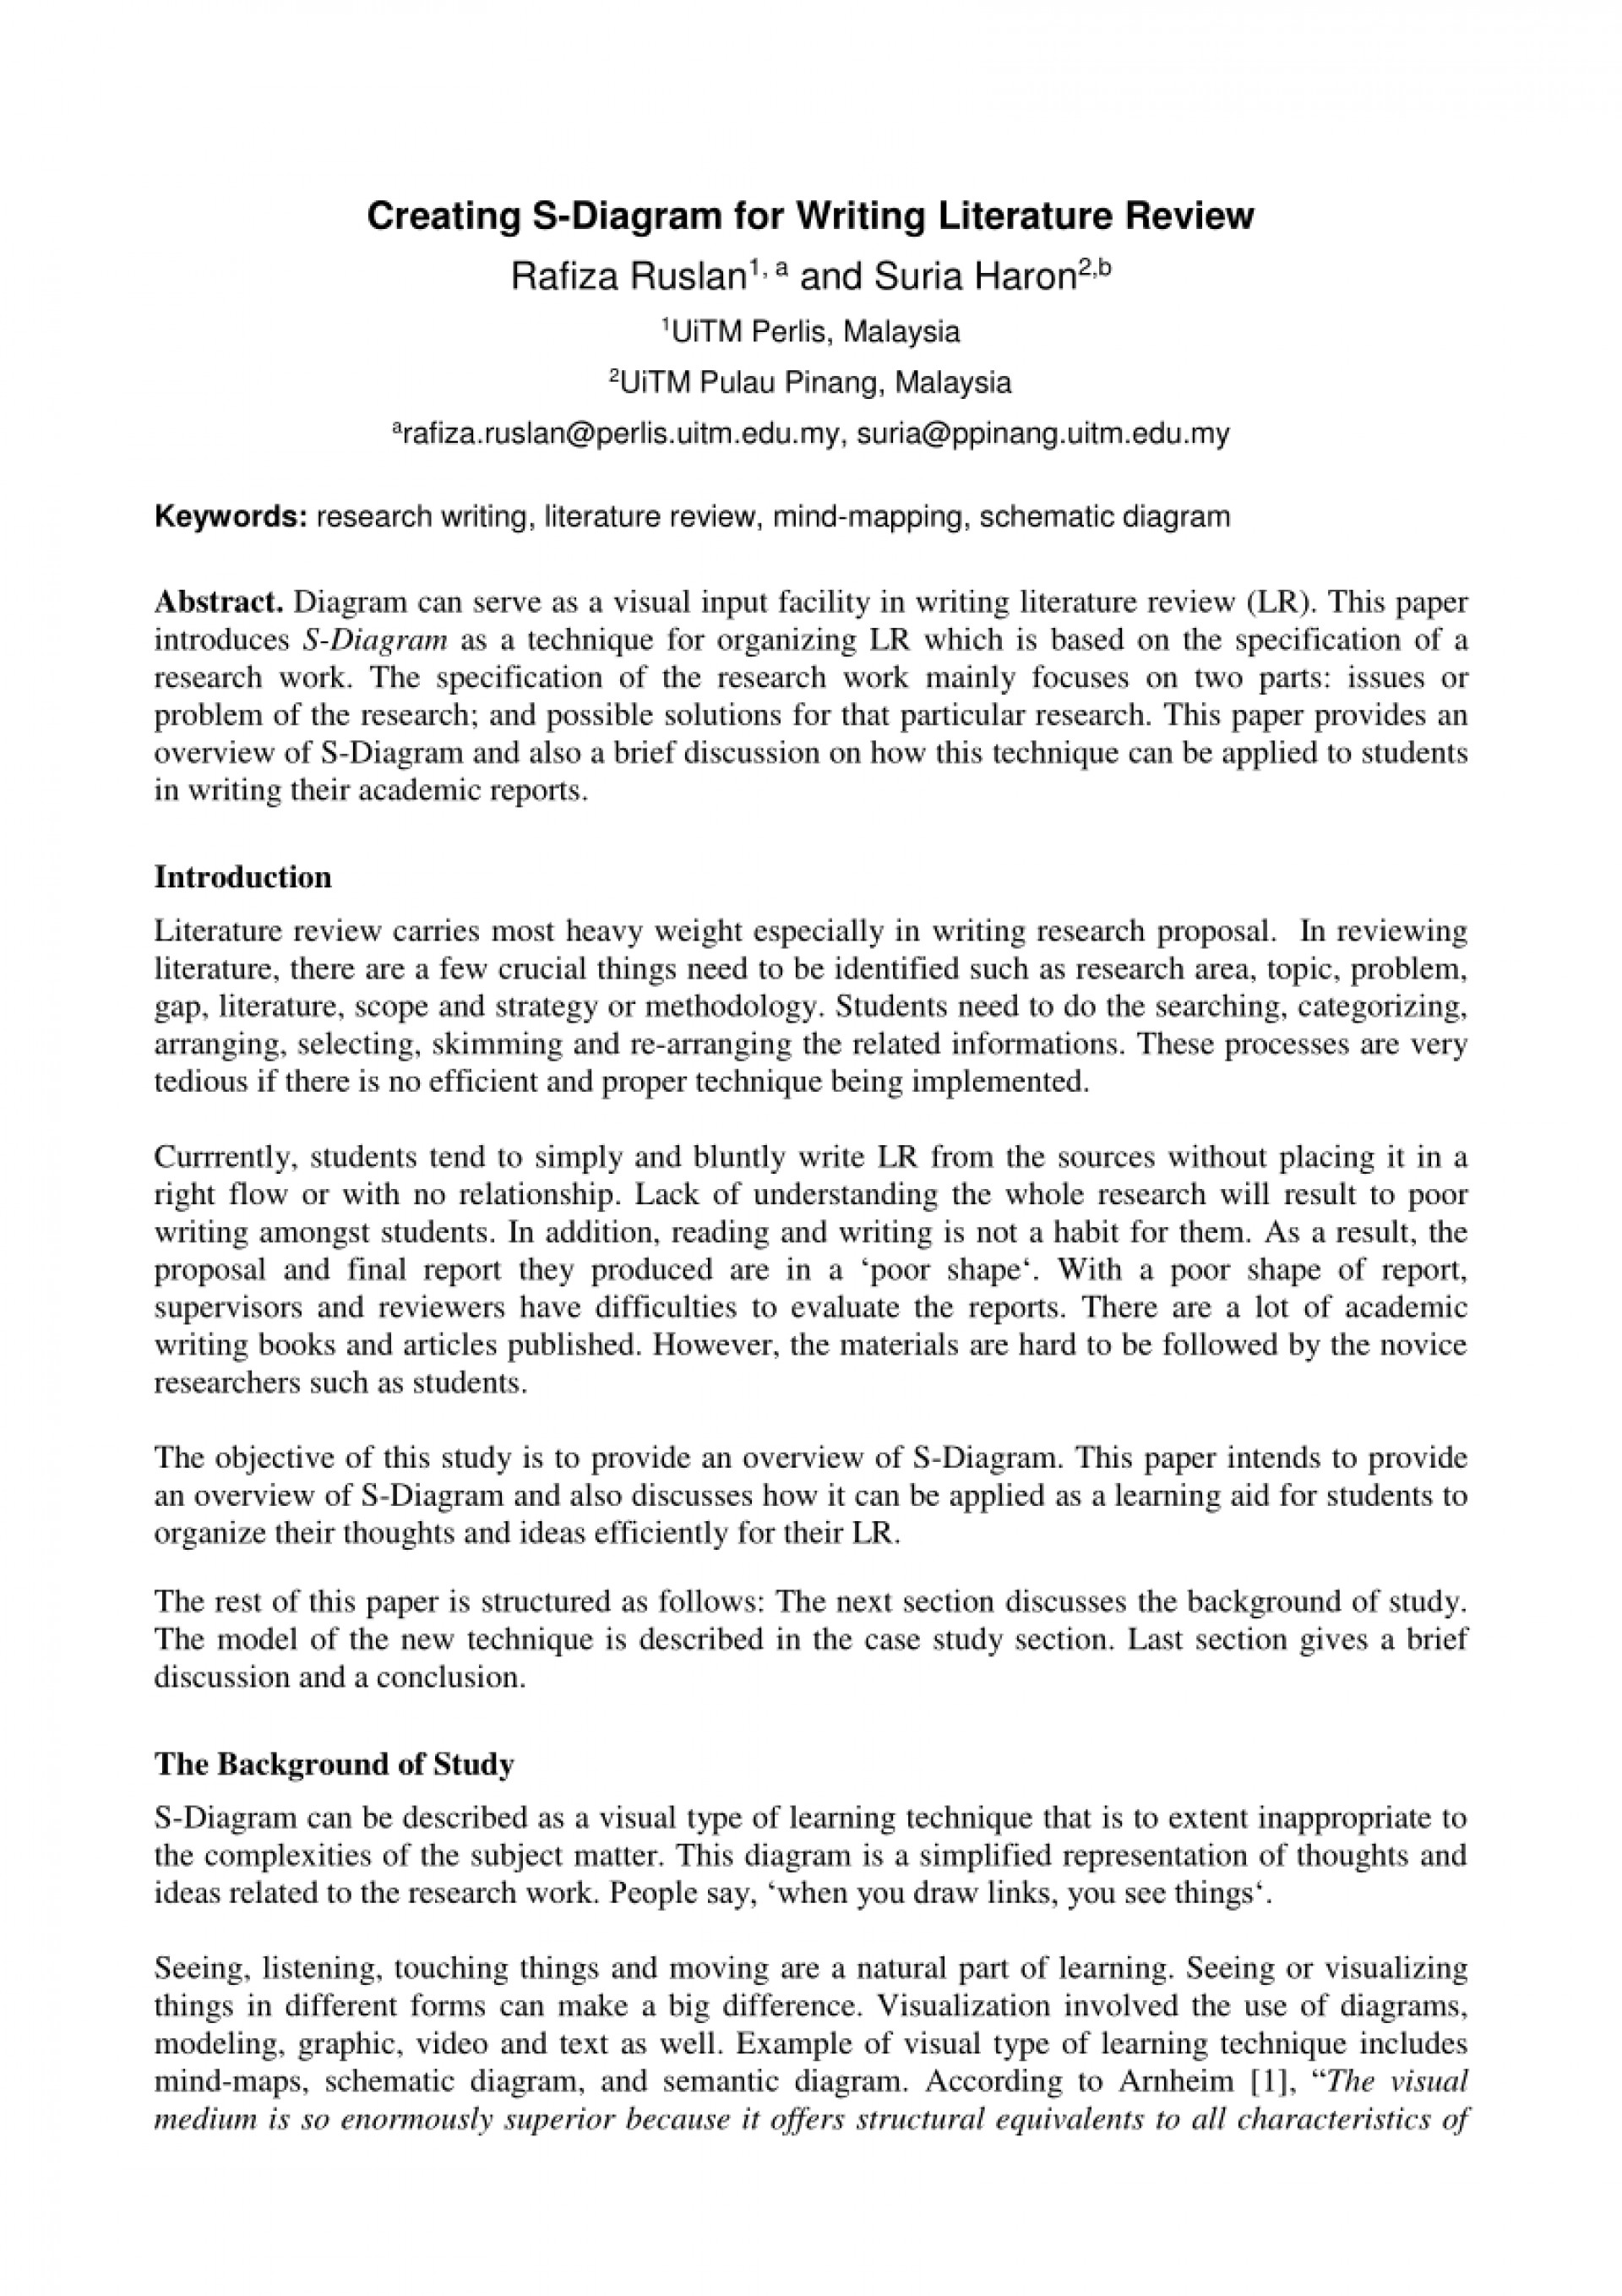 002 Research Paper How To Write Literature Review In Unbelievable A Pdf For Youtube Qualitative 1920